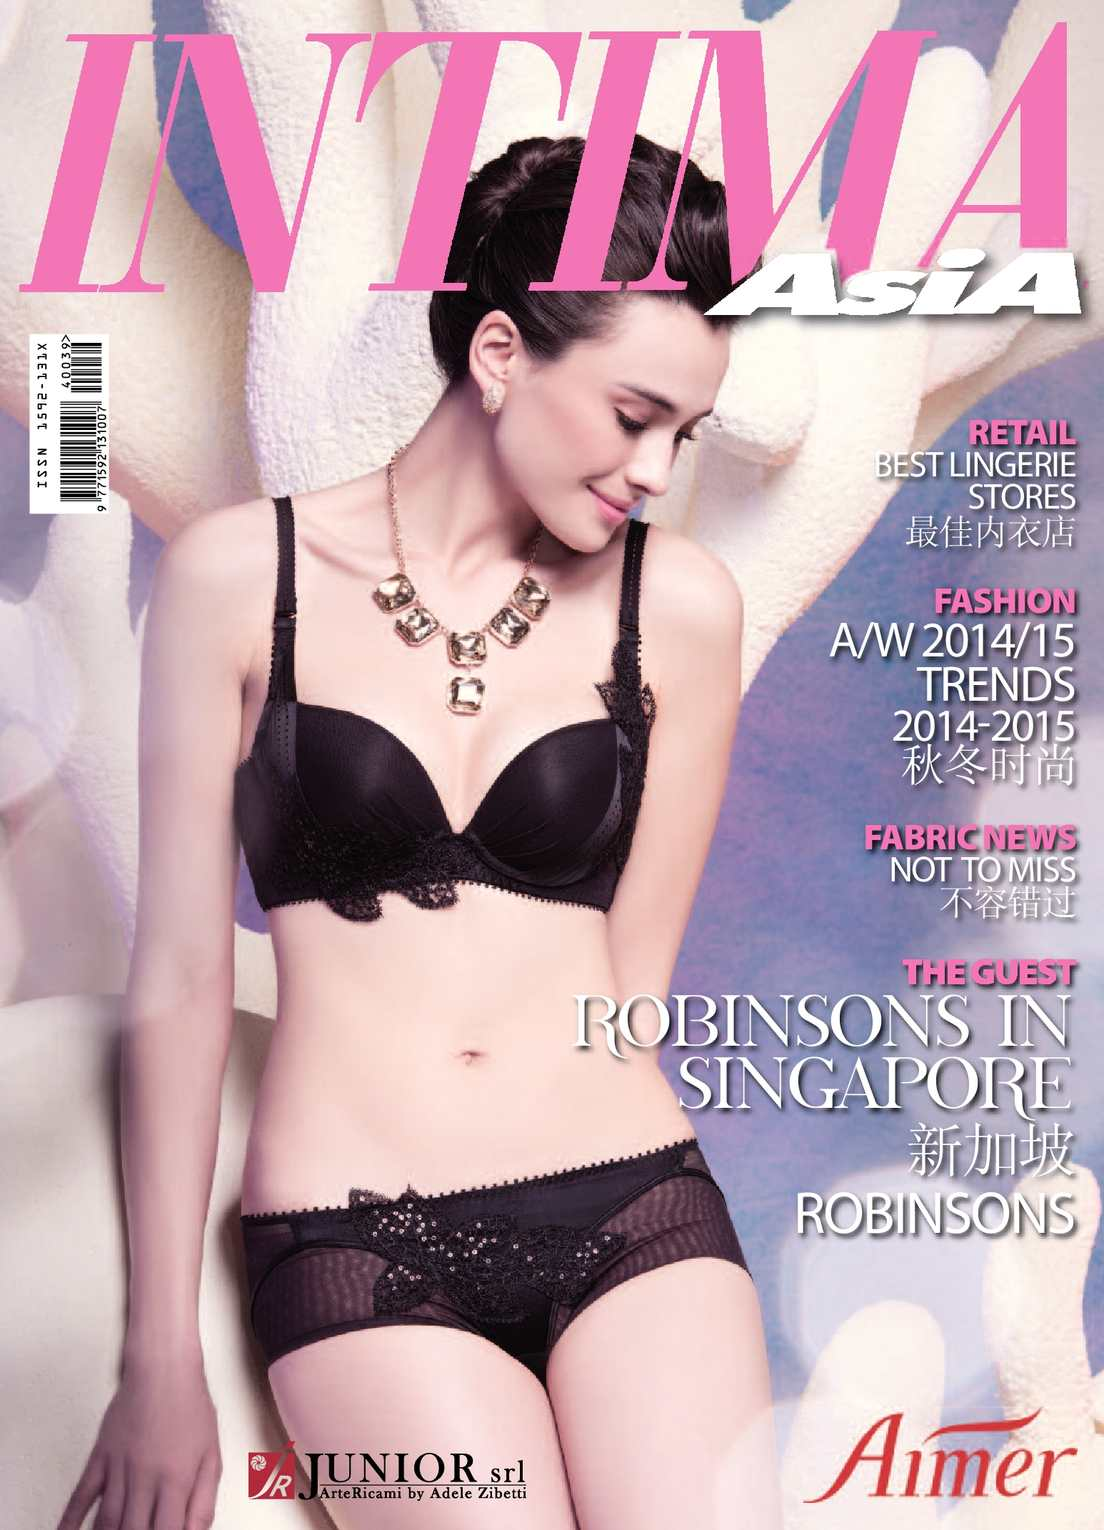 INTIMA ASIA MARCH 2014 VIEW